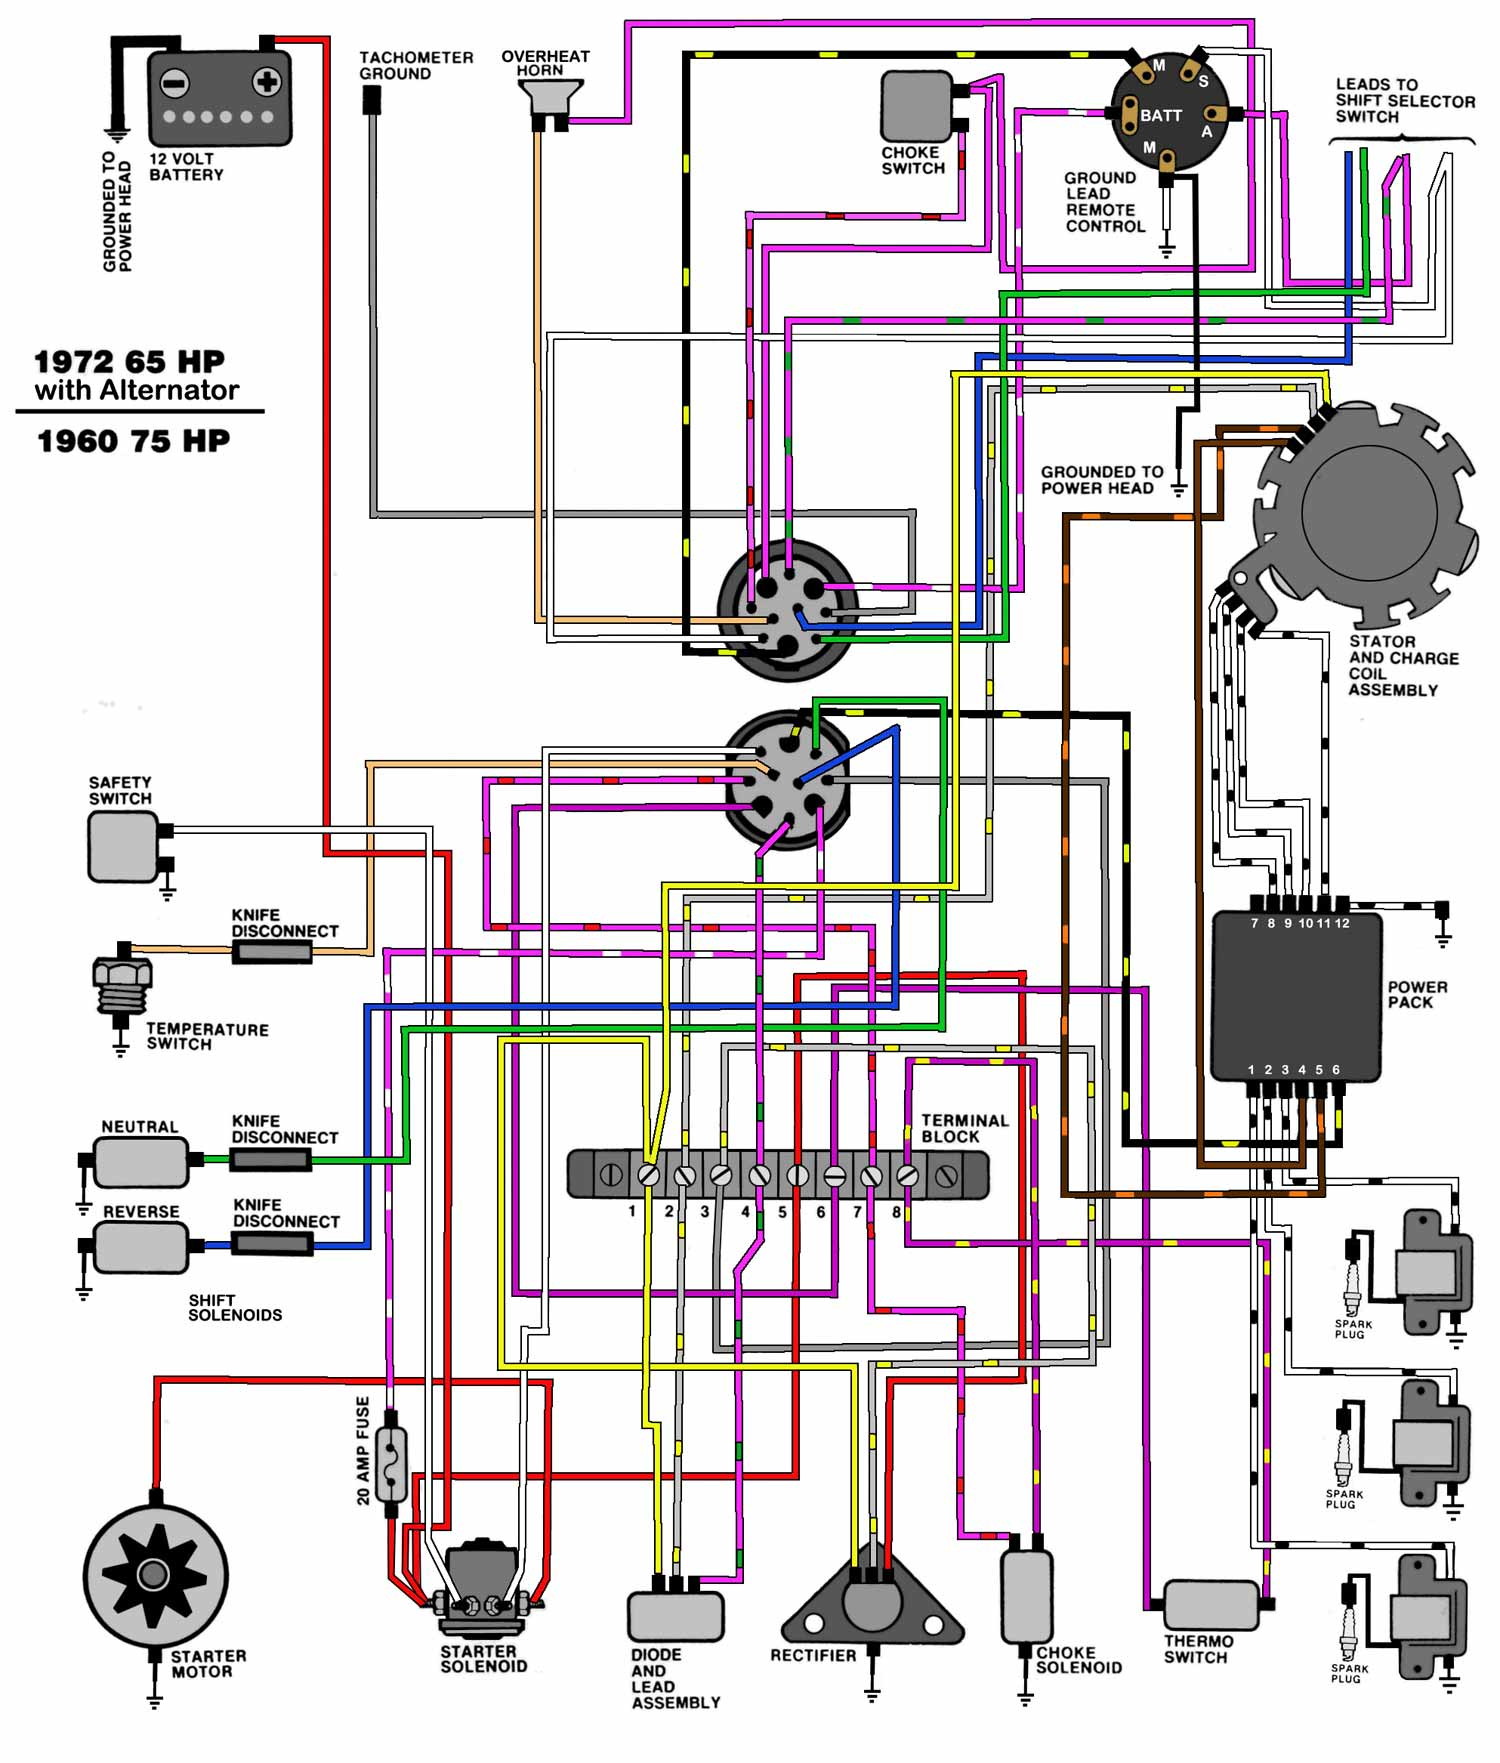 wiring diagram for yamaha 115 outboard johnson outboard wiring diagram wiring diagrams and schematics wiring diagrams for evinrude 55 hp boat motor